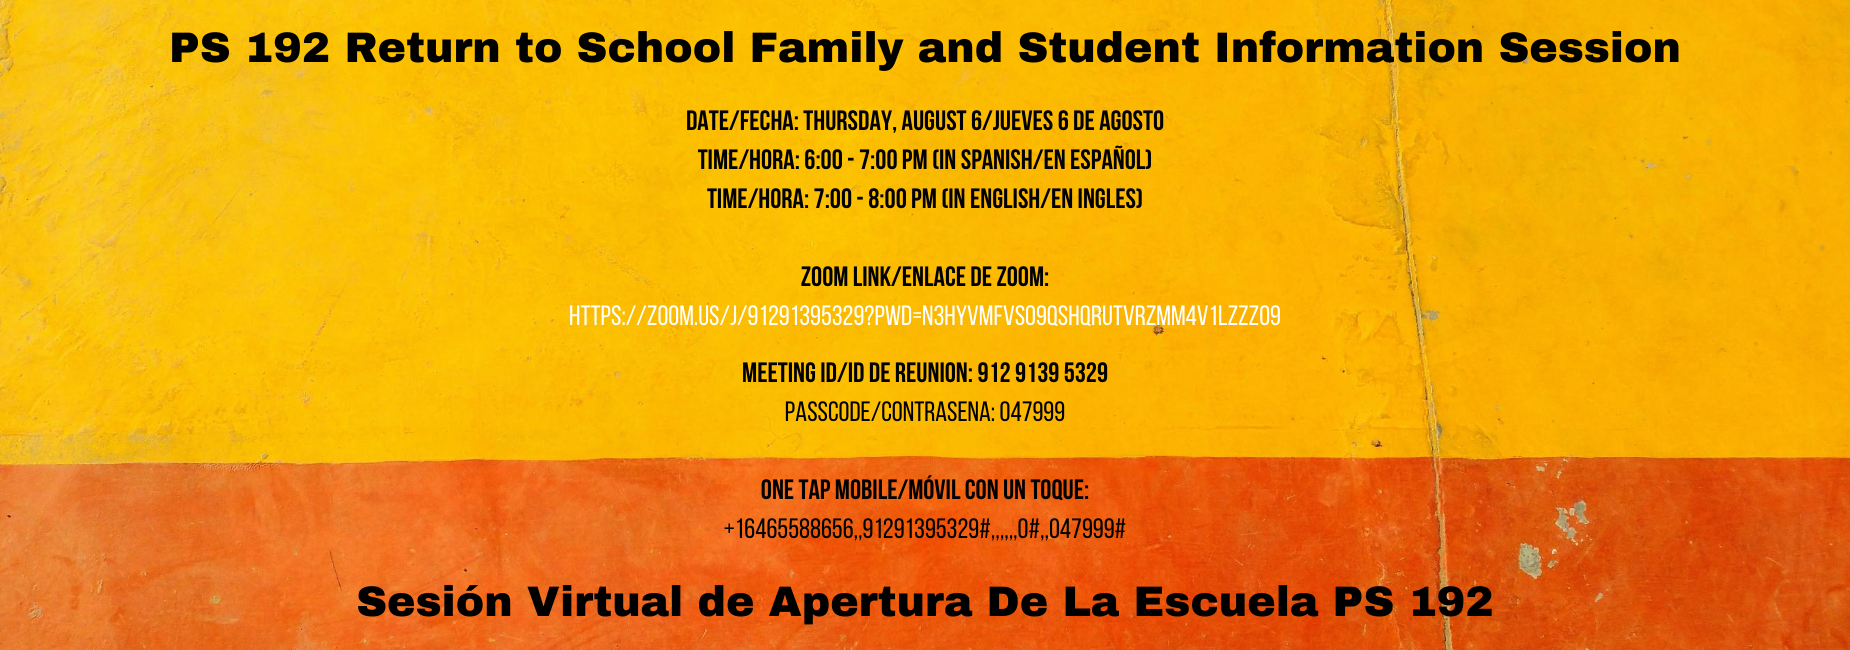 EVENT FLYER BILINGUAL IN YELLOW AND ORANGE